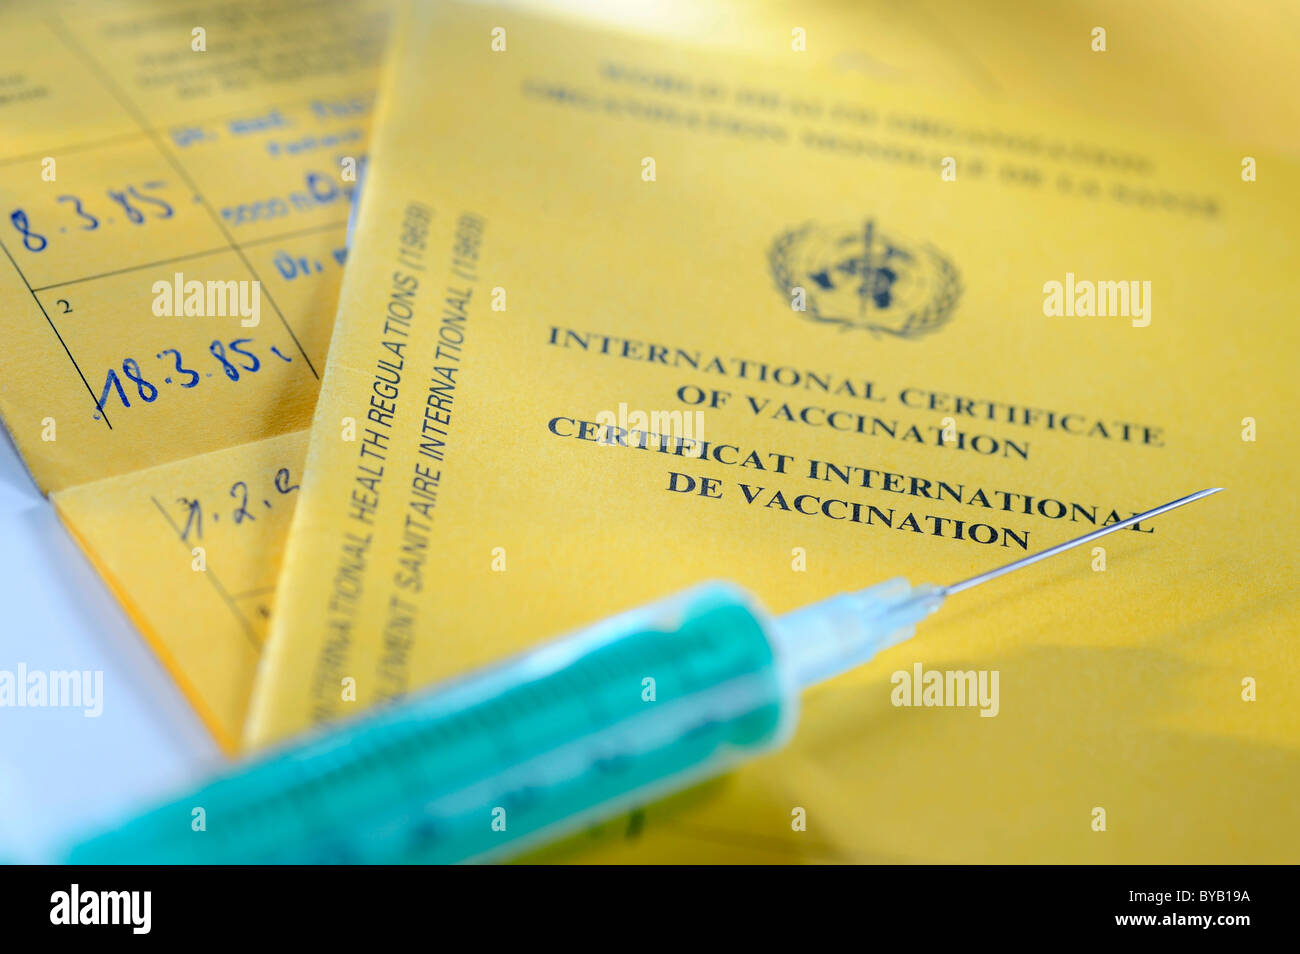 Vaccination record, international certificate of vaccination, syringe - Stock Image